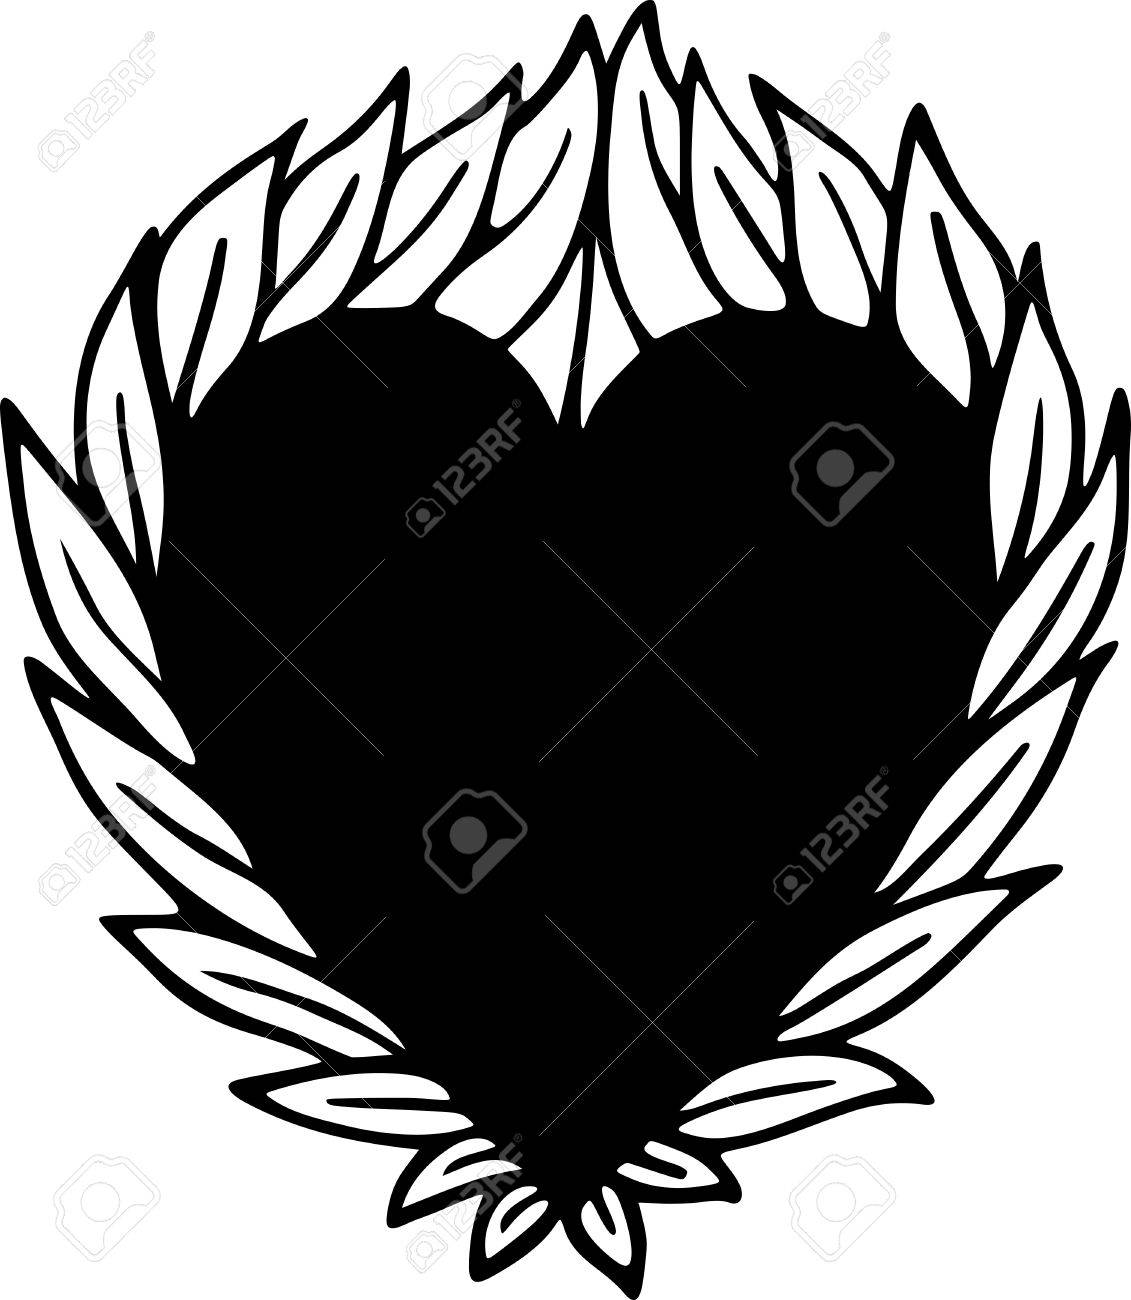 1131x1300 Simple Black And White Line Drawing Of A Heart Shape Surrounded